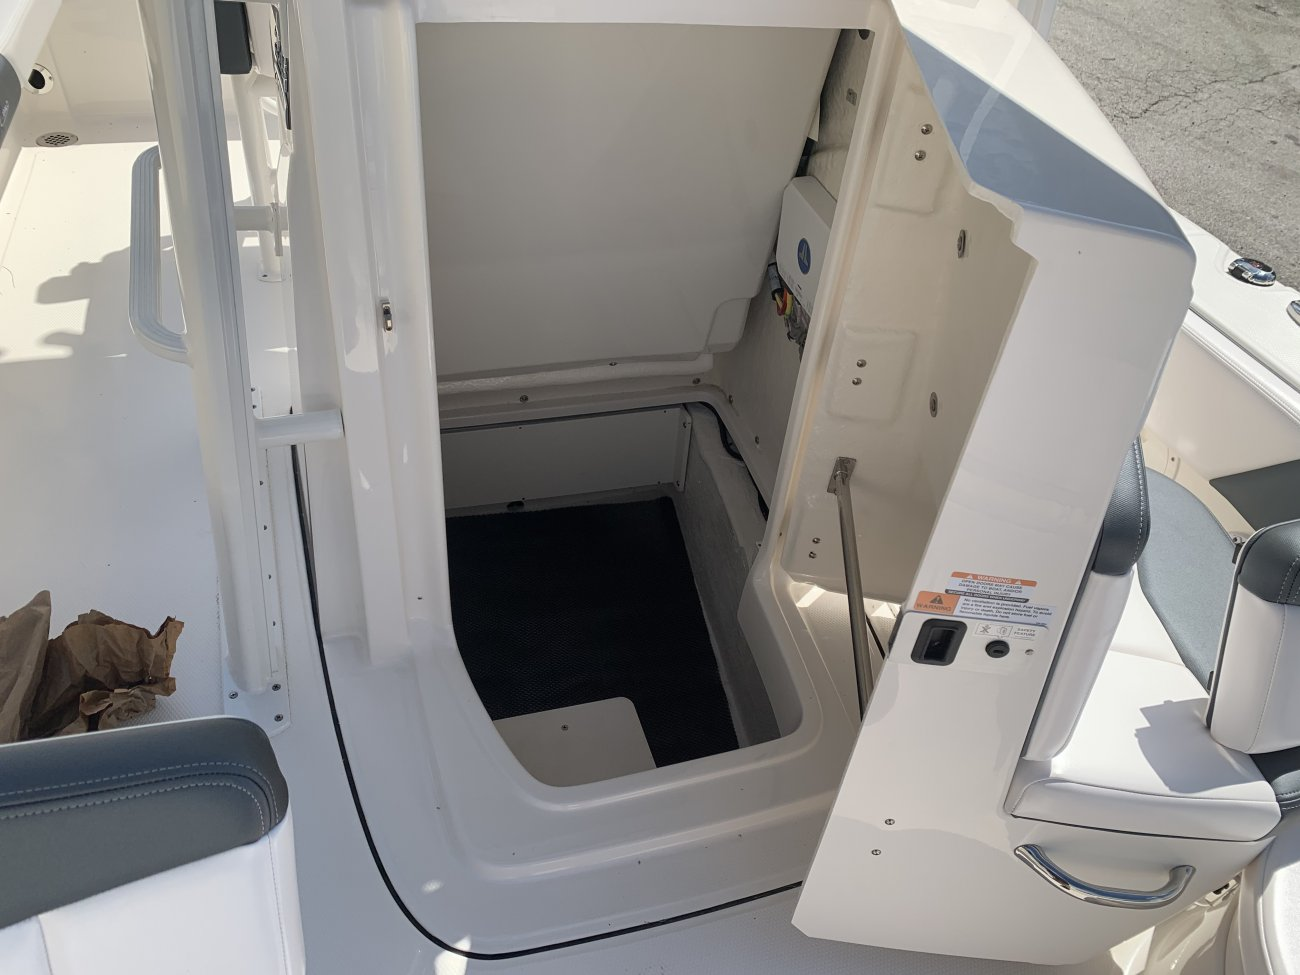 Center console is an open hull boat where the console of the boat is in the center. The boat deck surrounds the console so that a person can walk all around the boat from stern to bow with ease. Most center consoles are powered by outboard motors.